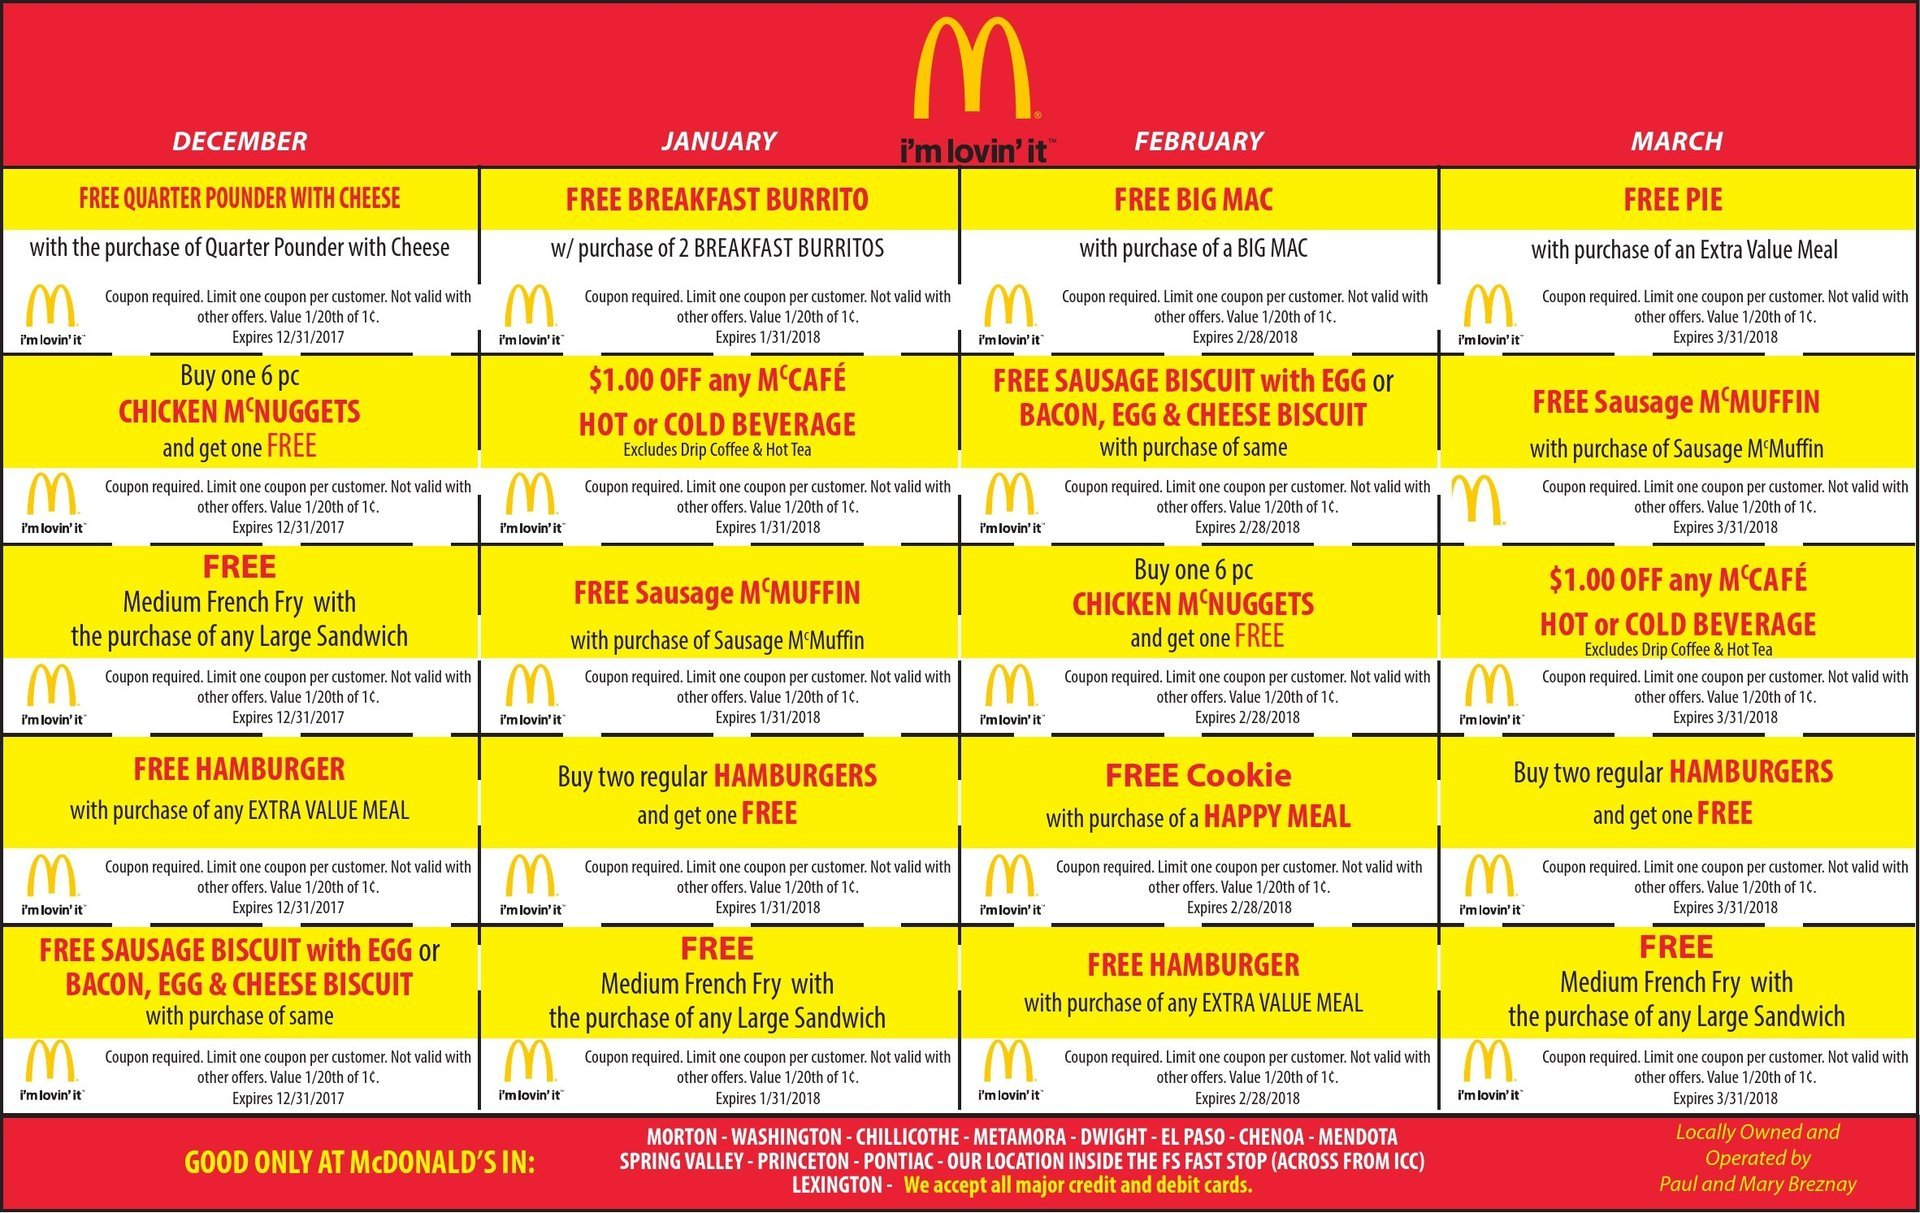 McDonald's food, breakfast, lunch and dinner coupons Morton, Washington, Metamora, IL